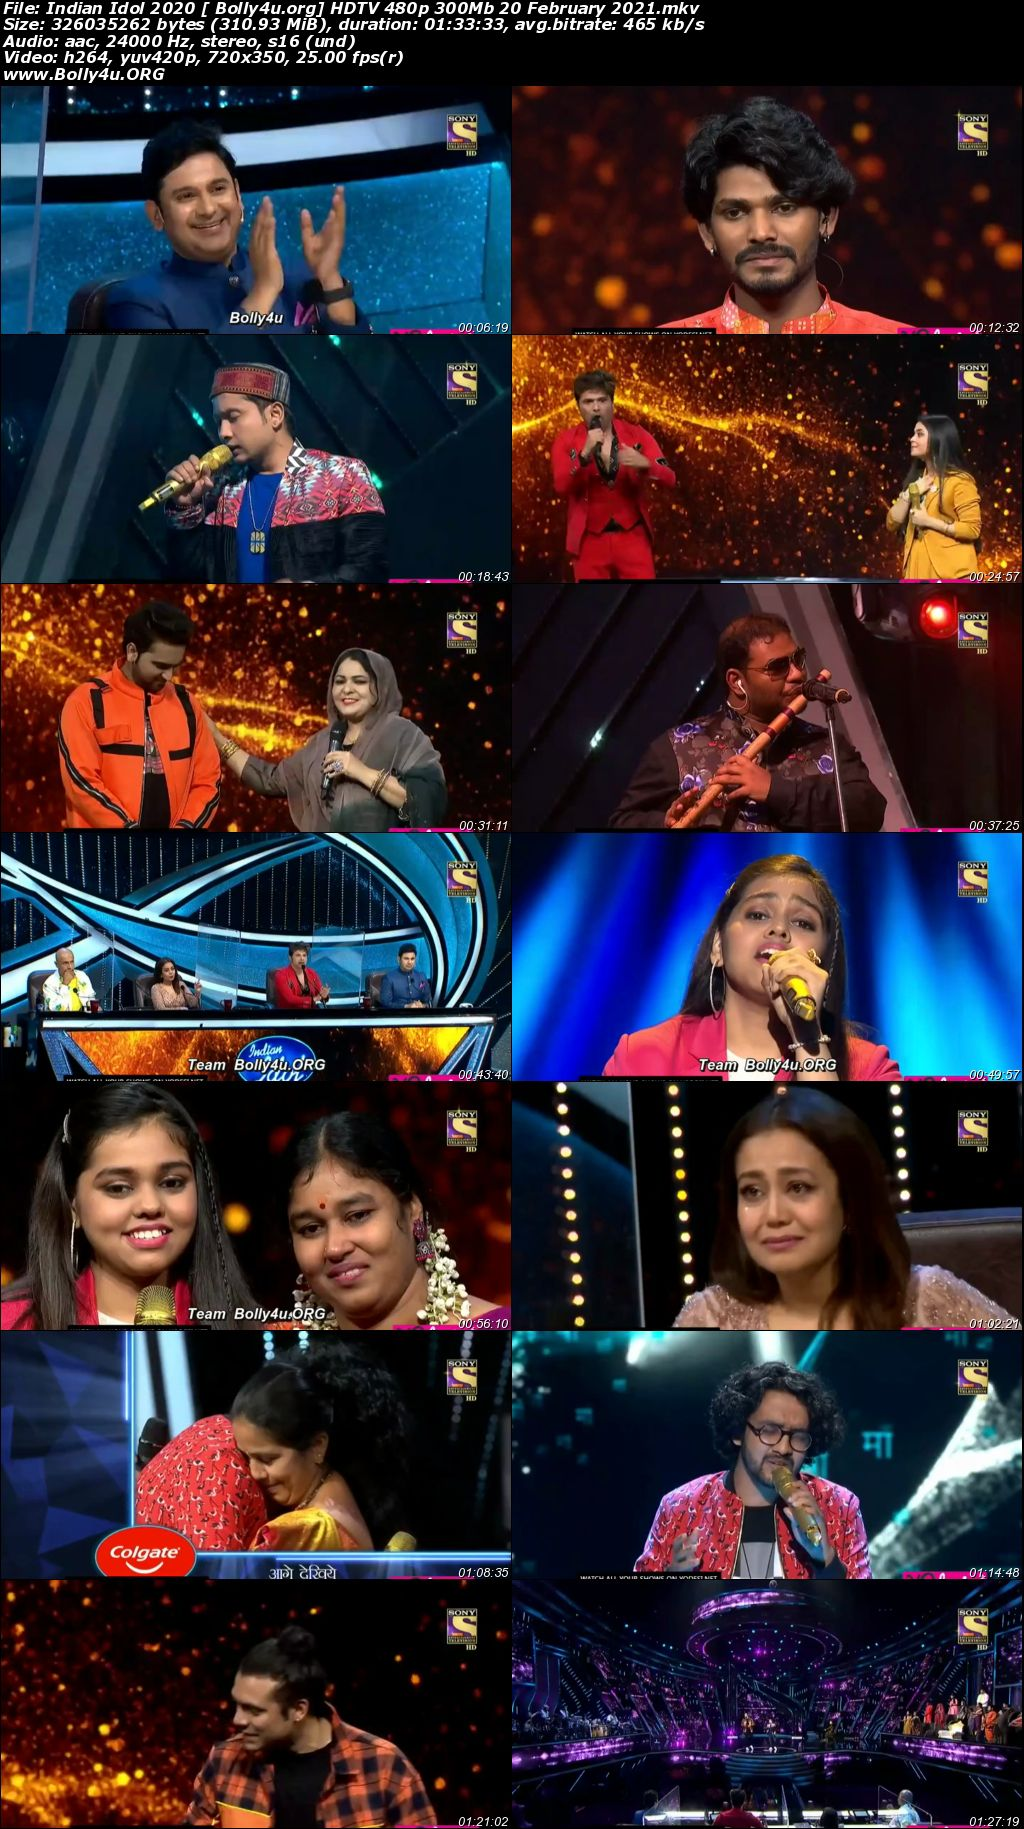 Indian Idol 2021 HDTV 480p 300Mb 20 February 2021 Download